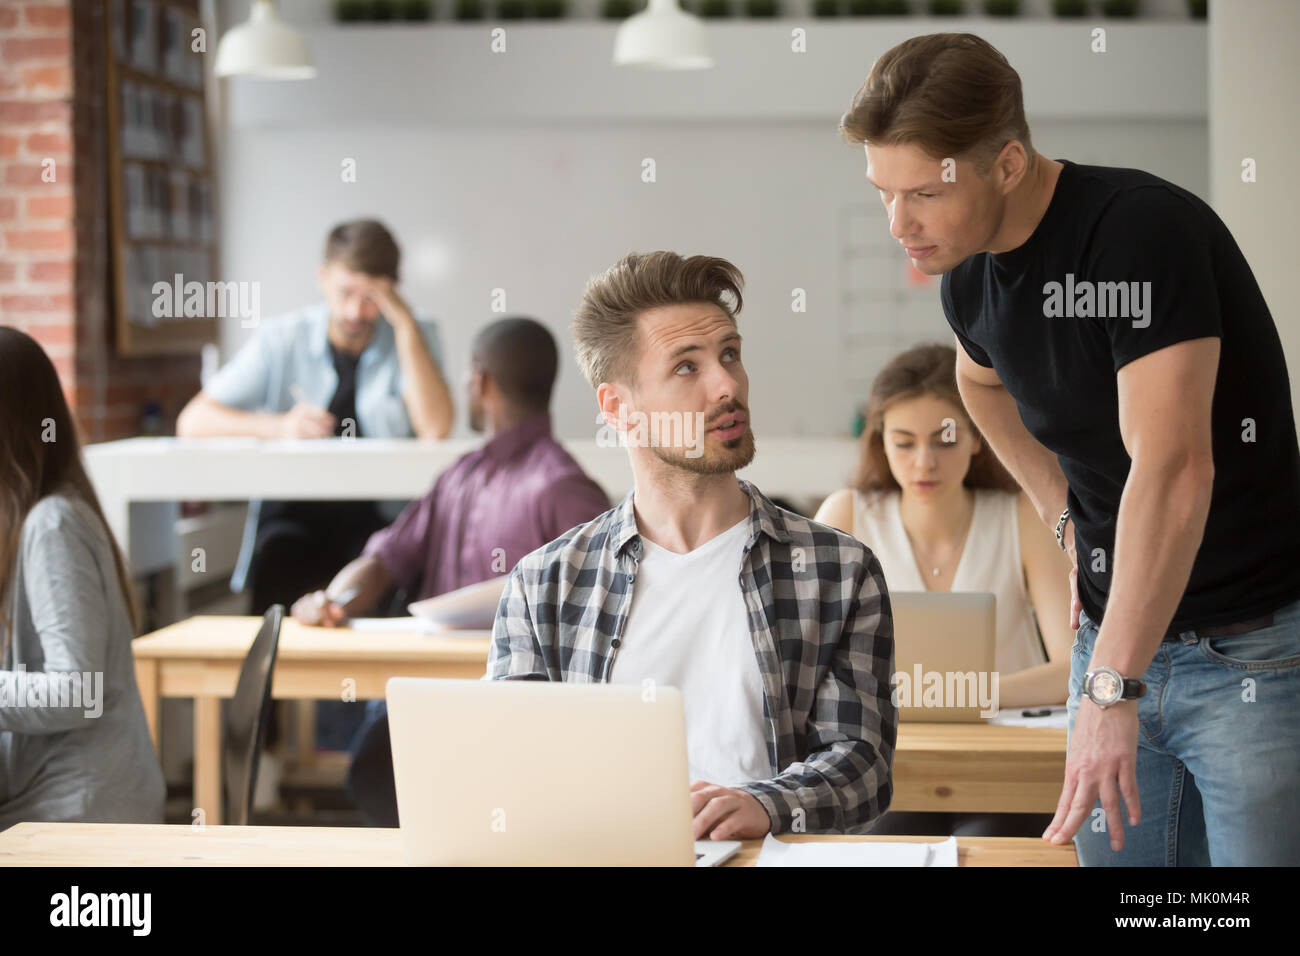 Male intern asking for help from supervisor - Stock Image